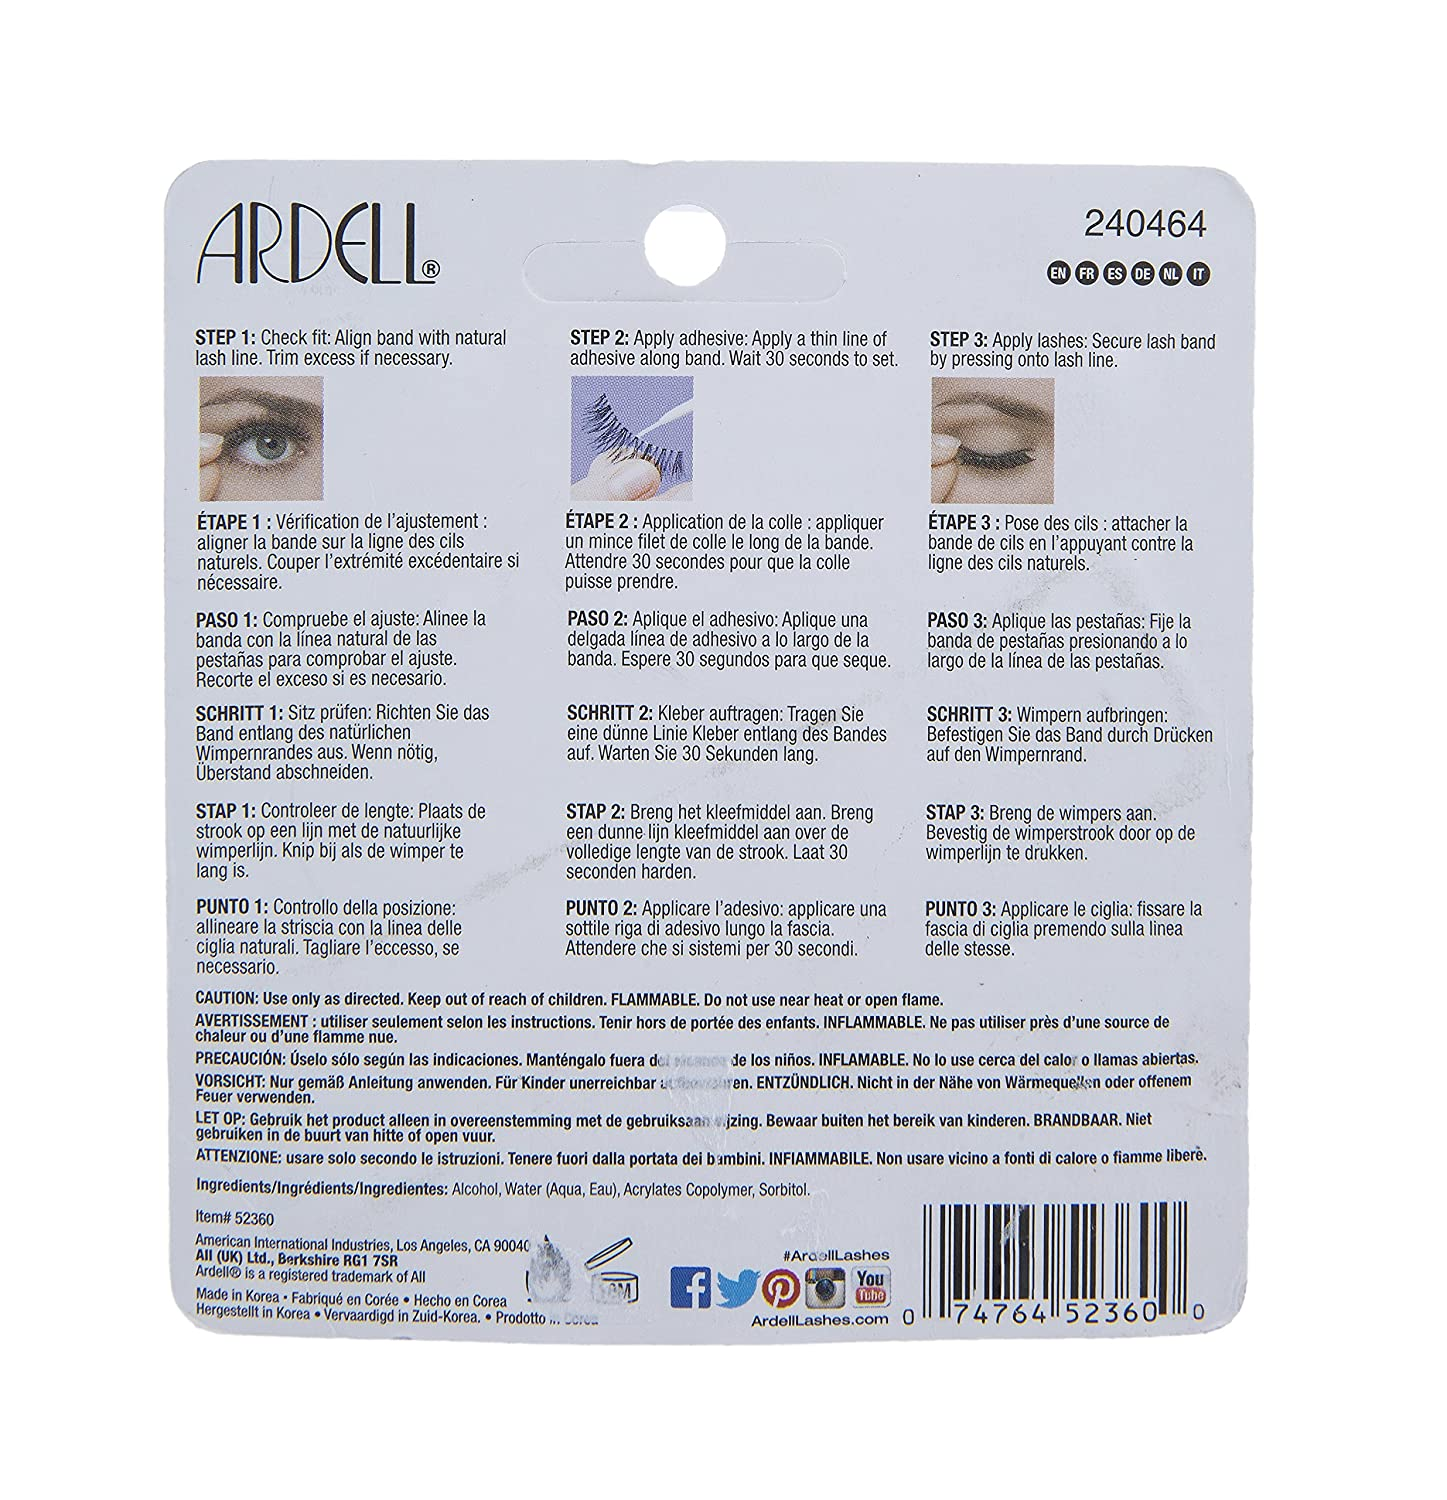 Amazon.com: Maven Gifts: Ardell Multipack Demi Wispies Fake Eyelashes with Brush On Lash Adhesive and Dual Lash Applicator: Beauty